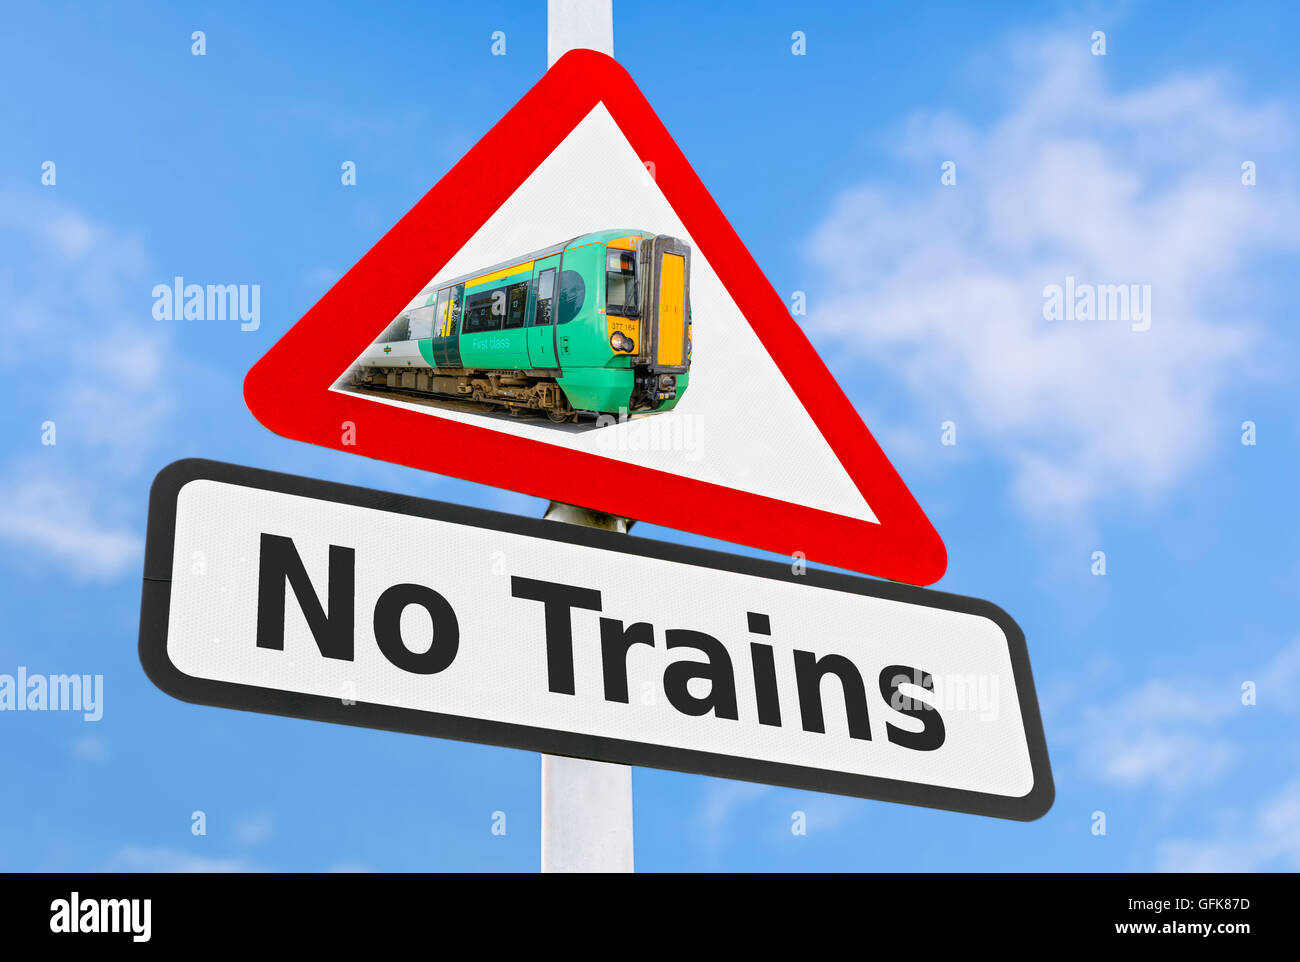 No Trains warning sign showing a Southern Railway train. Southern Rail strike. Trains cancelled. Cancelled trains. - Stock Image